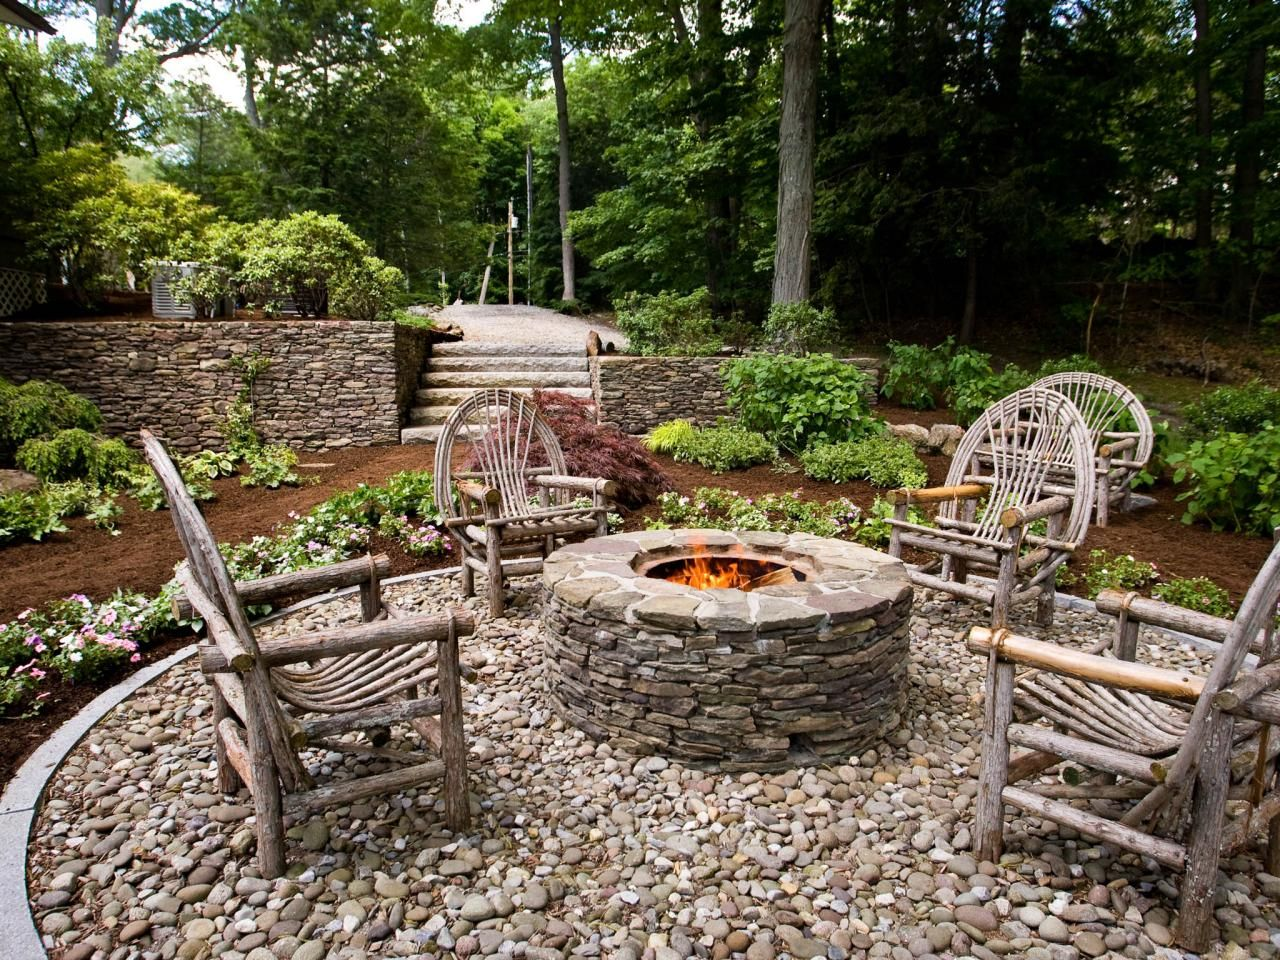 Stone fire pit designs patio traditional with artistic hardscape - Rustic Style Fire Pits